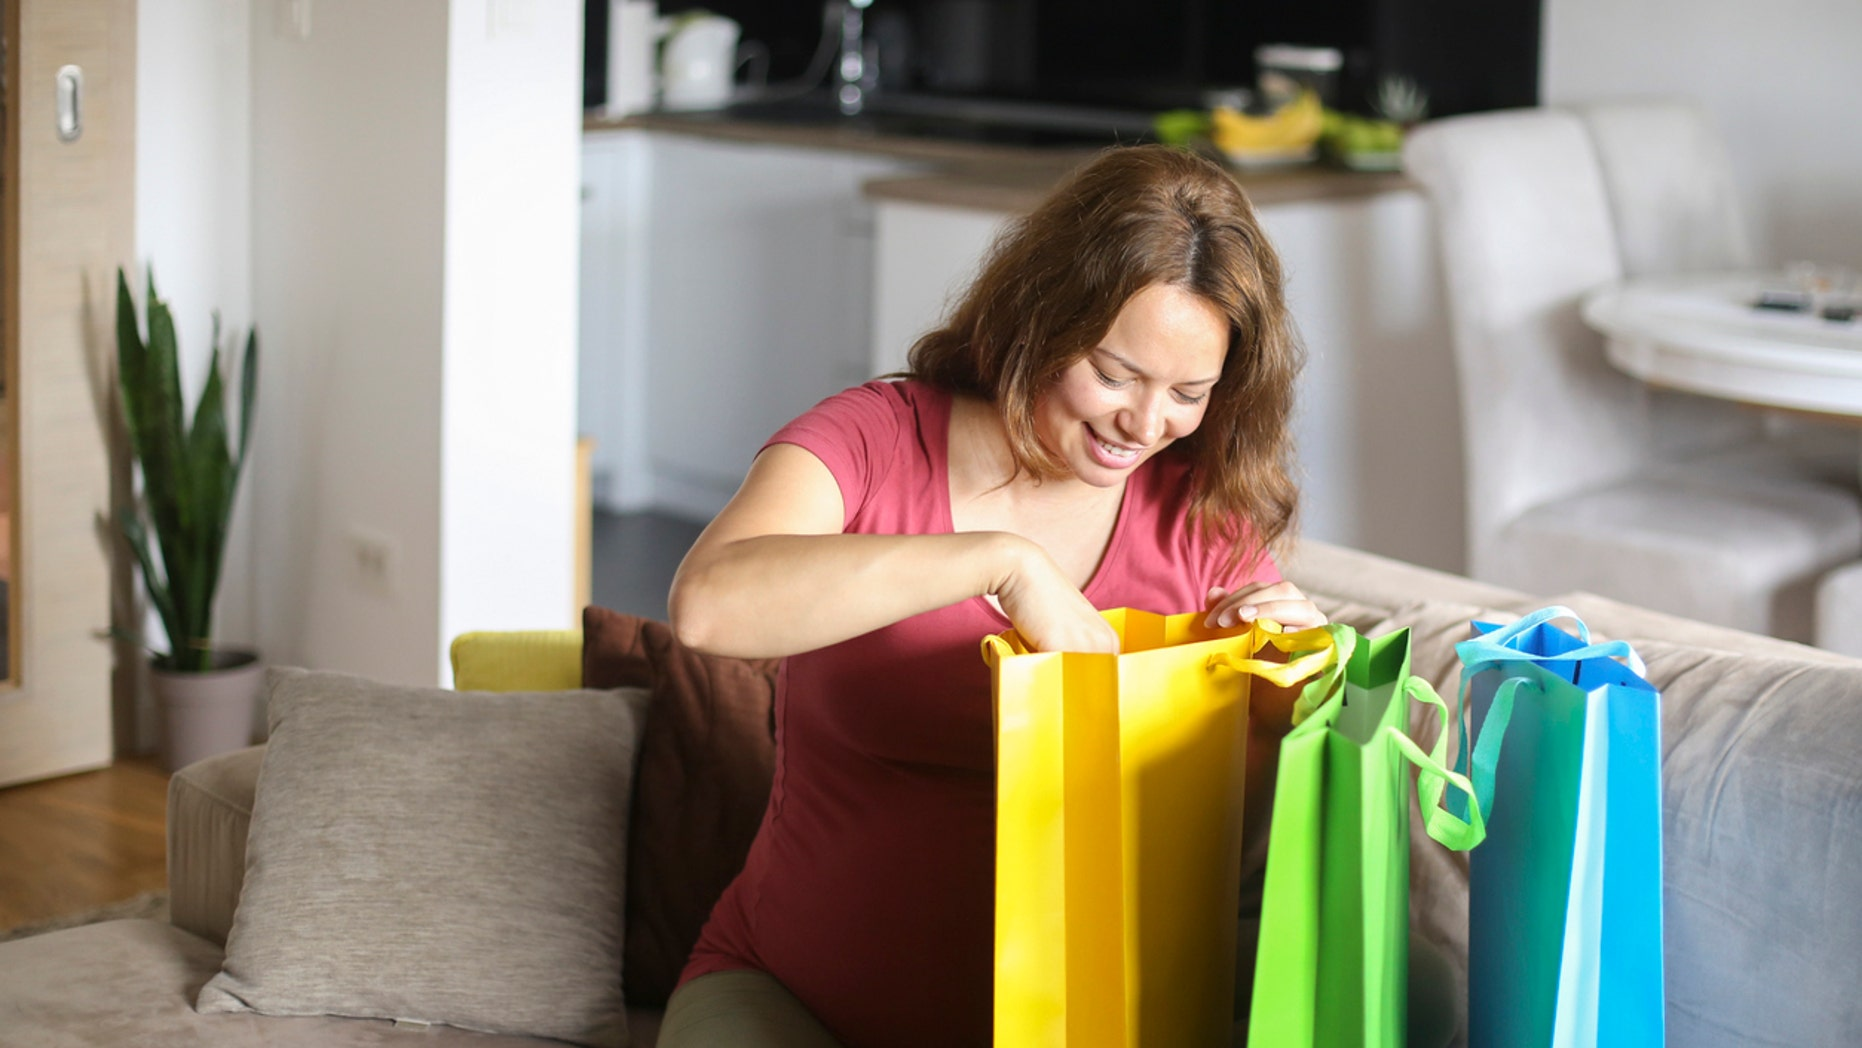 """A woman from the UK is upset about her mother-in-law's habit of sending out wish lists, calling the move childish and """"grabby."""""""